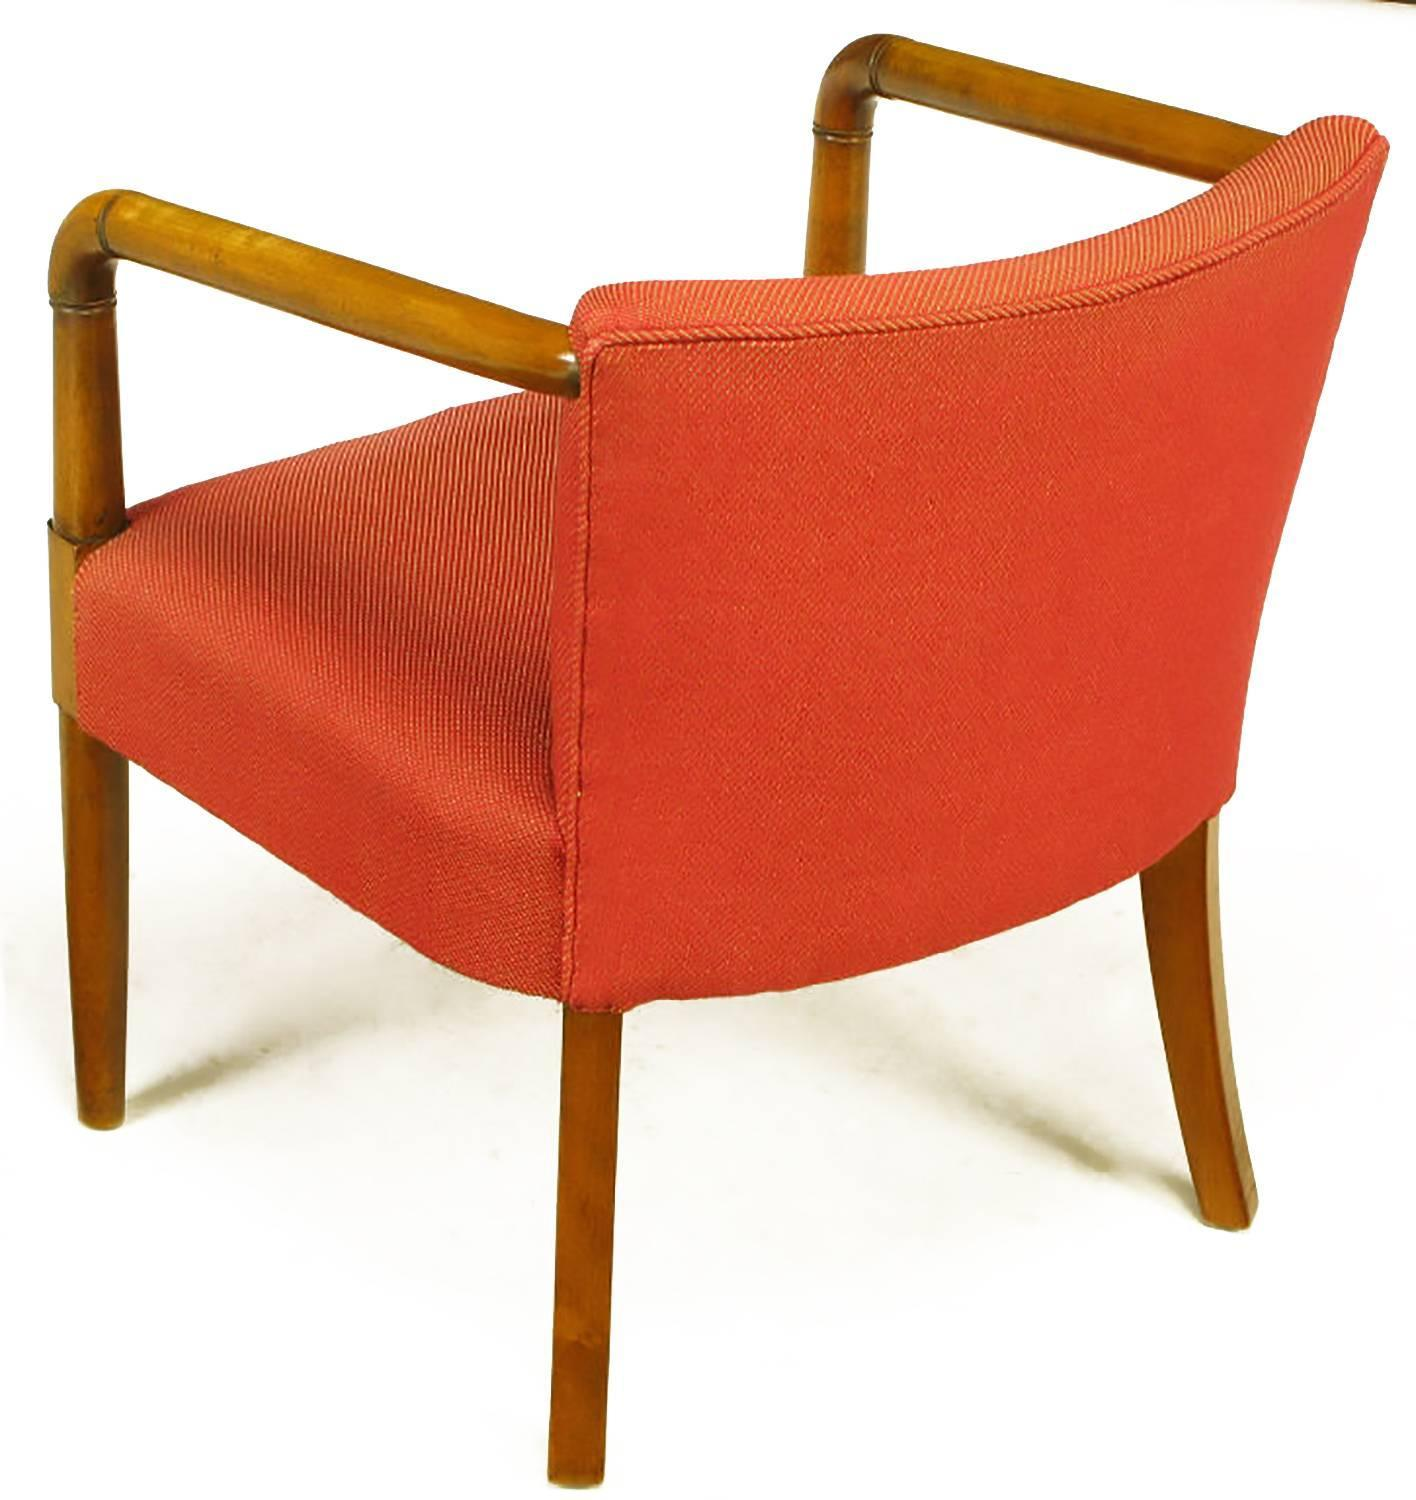 Mahogany And Crimson Upholstered Slope Arm Desk Chair For